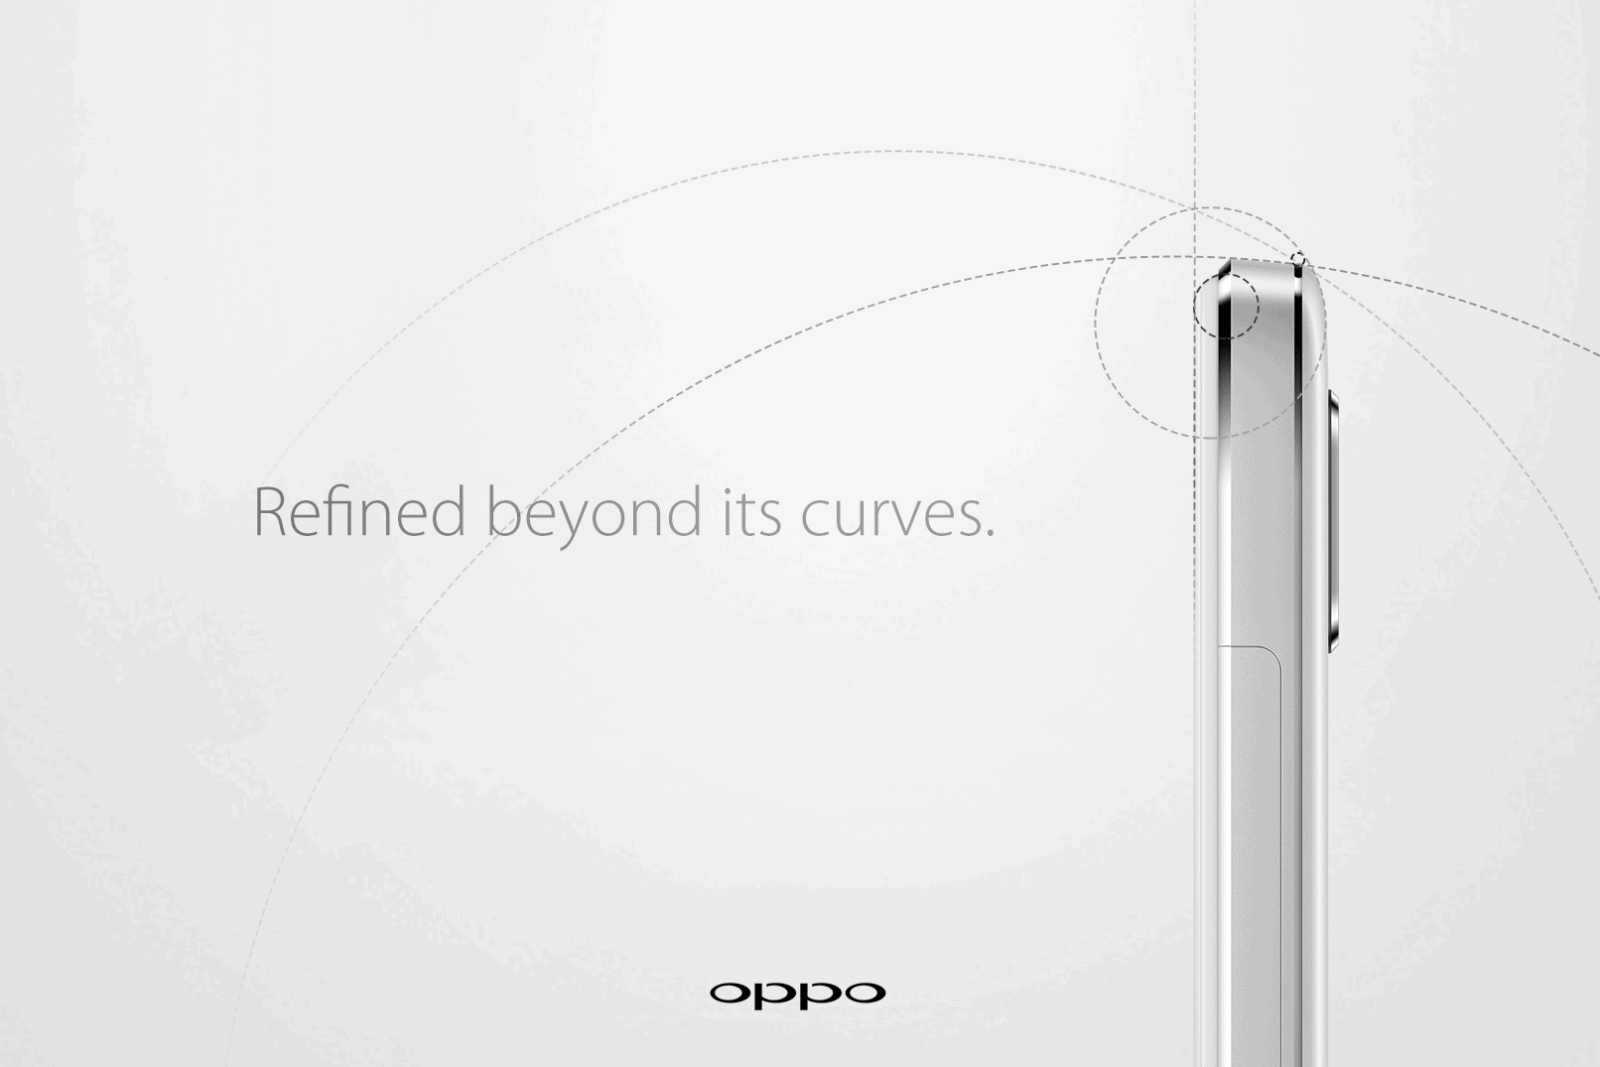 The OPPO R7 with Mental Design